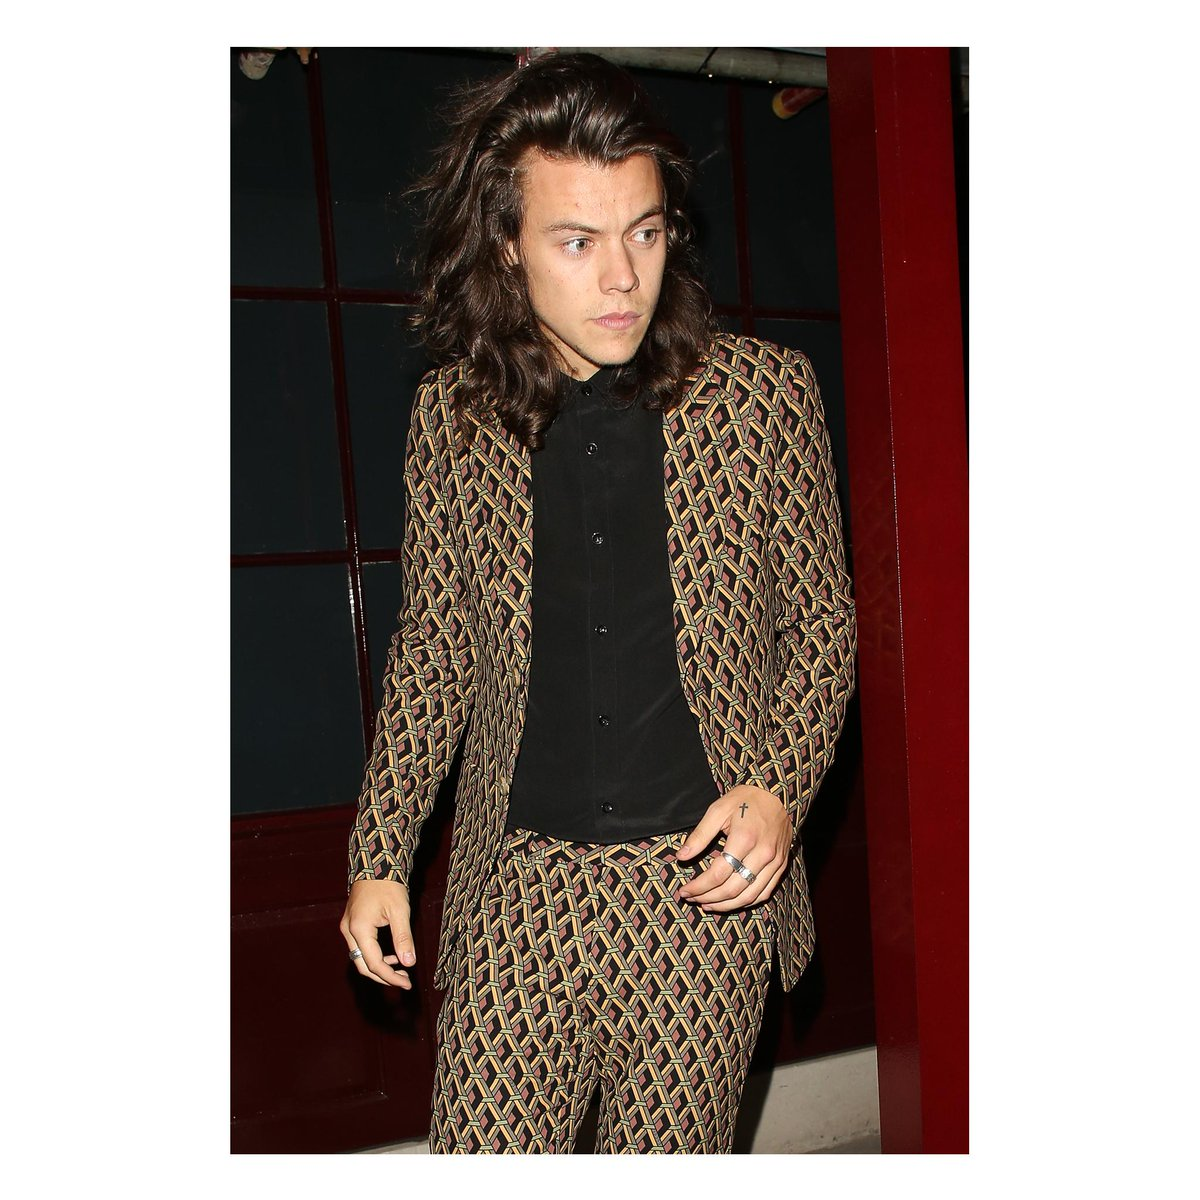 About last night in London: @Harry_Styles in a #GucciFW15 wicker print silk suit. #AlessandroMichele #HarryStyles